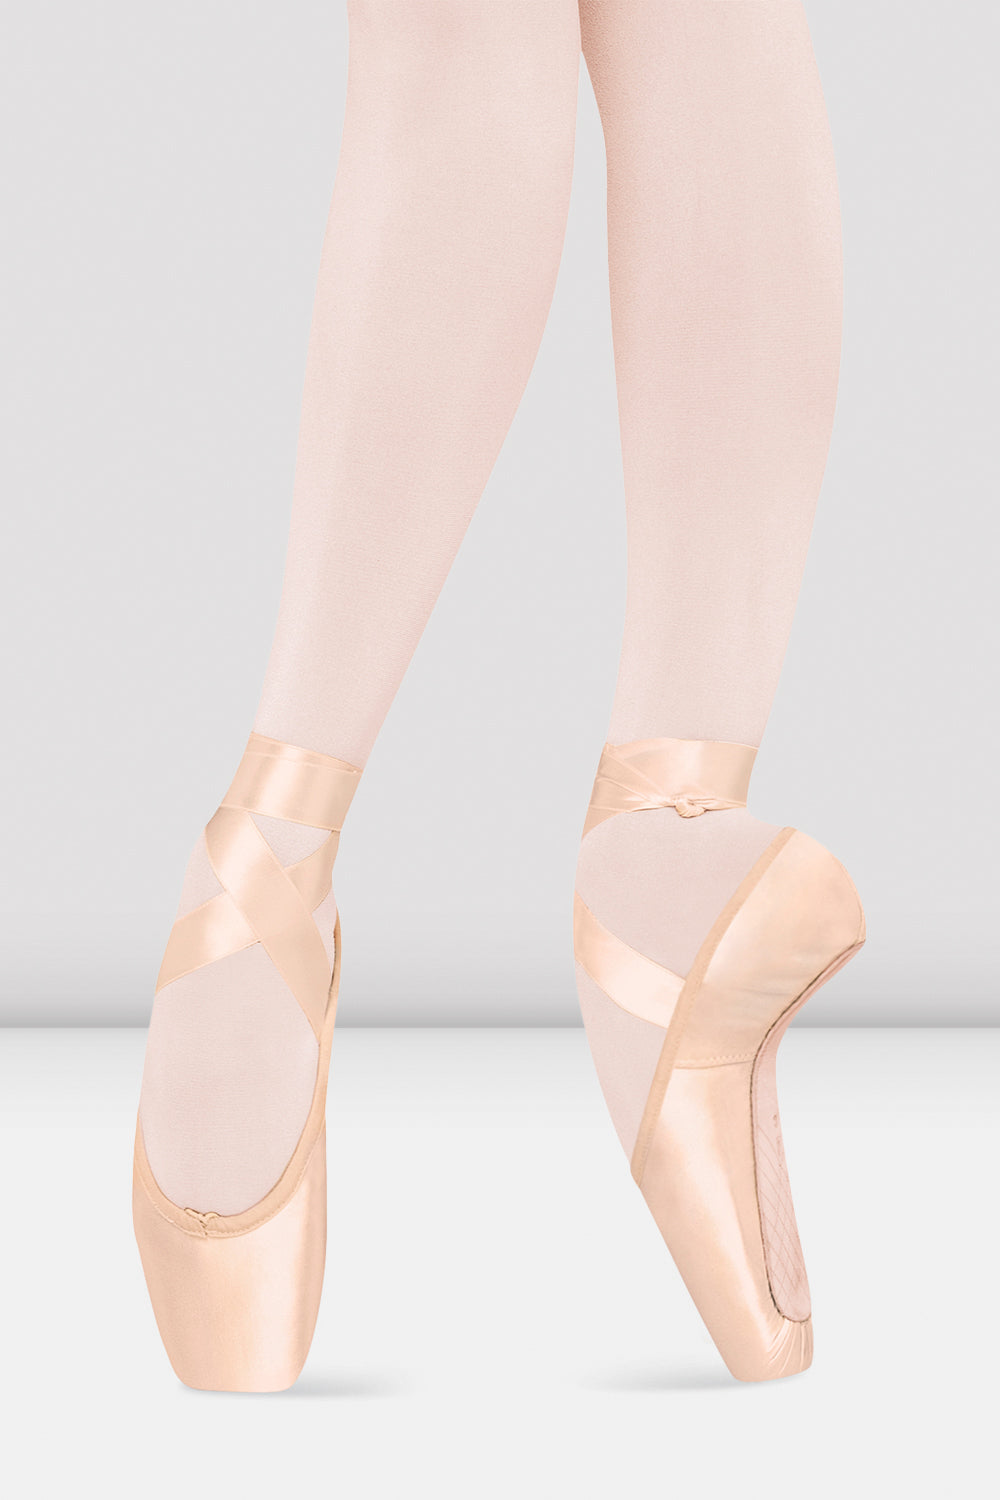 SALE Bloch Professional Pink Ballet Shoe Ribbon 20/% OFF RRP